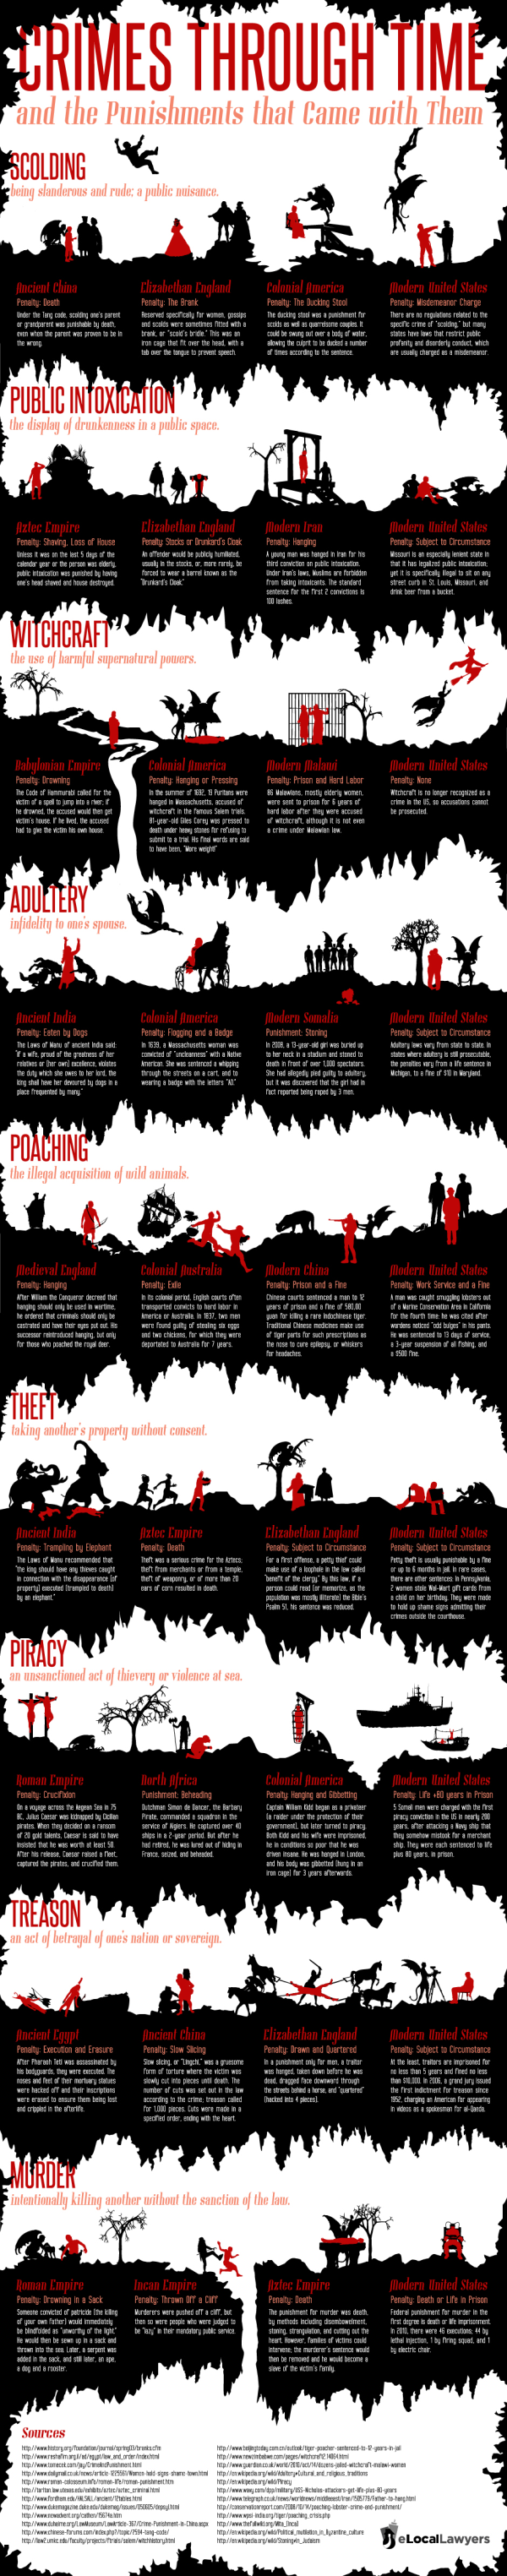 Crimes Through Time Infographic Consultants new york city nyc